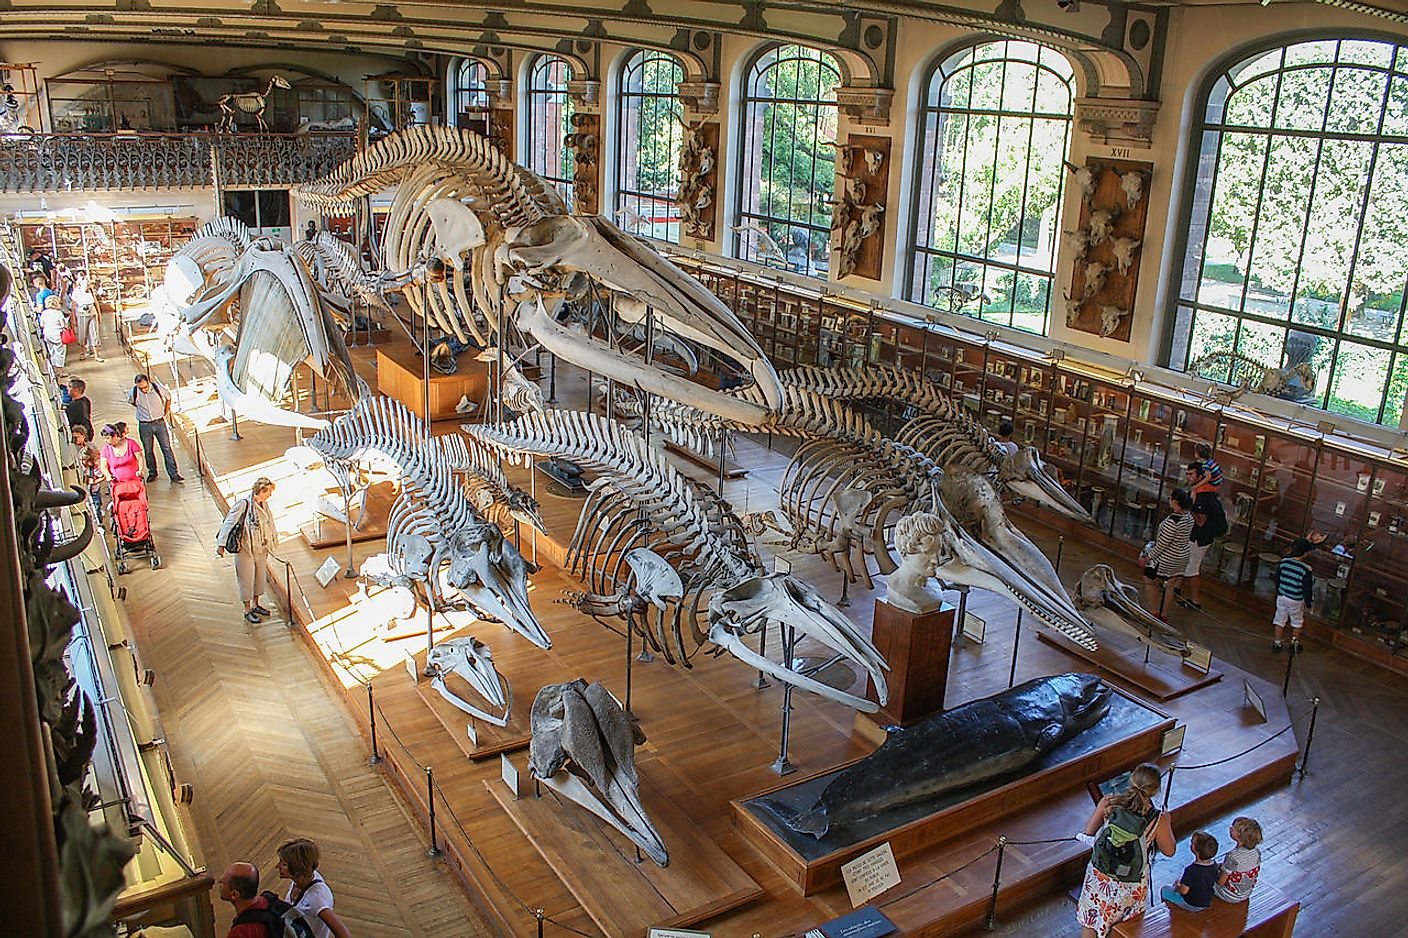 Museum of Natural History, Paris. Image credit: Shadowgate from Novara, ITALY/Wikimedia.org